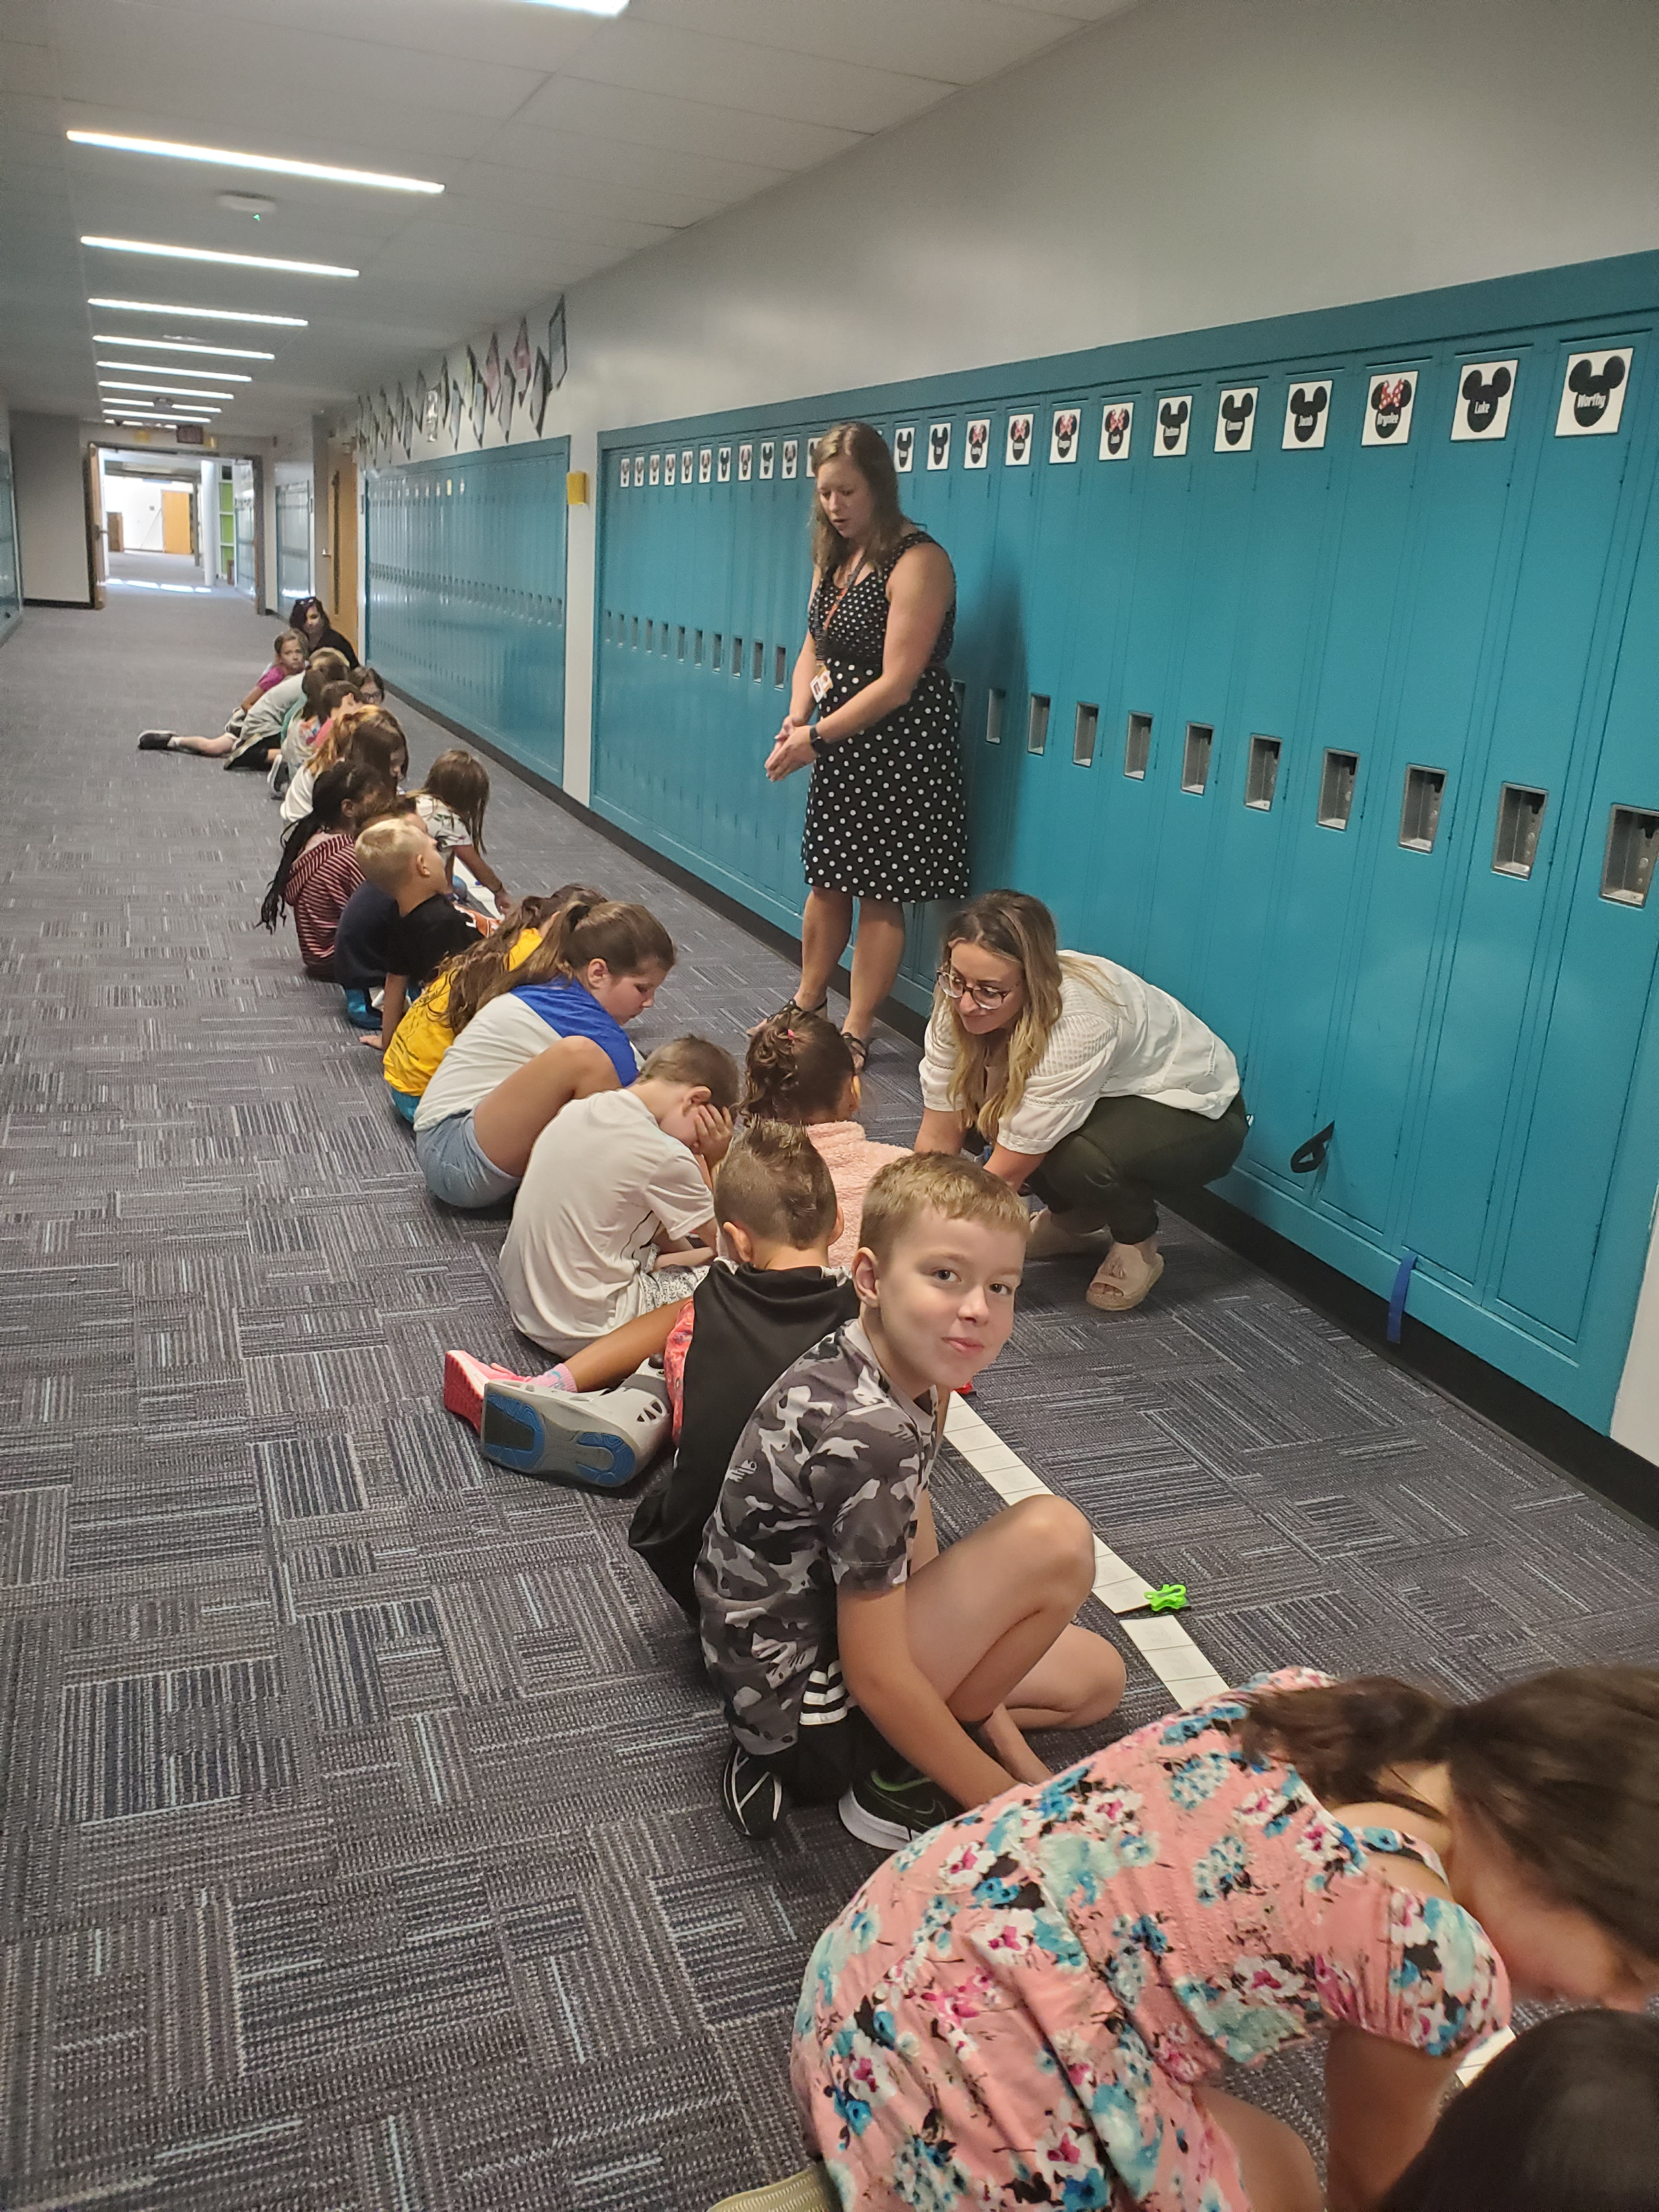 Students in the hallway with the number line